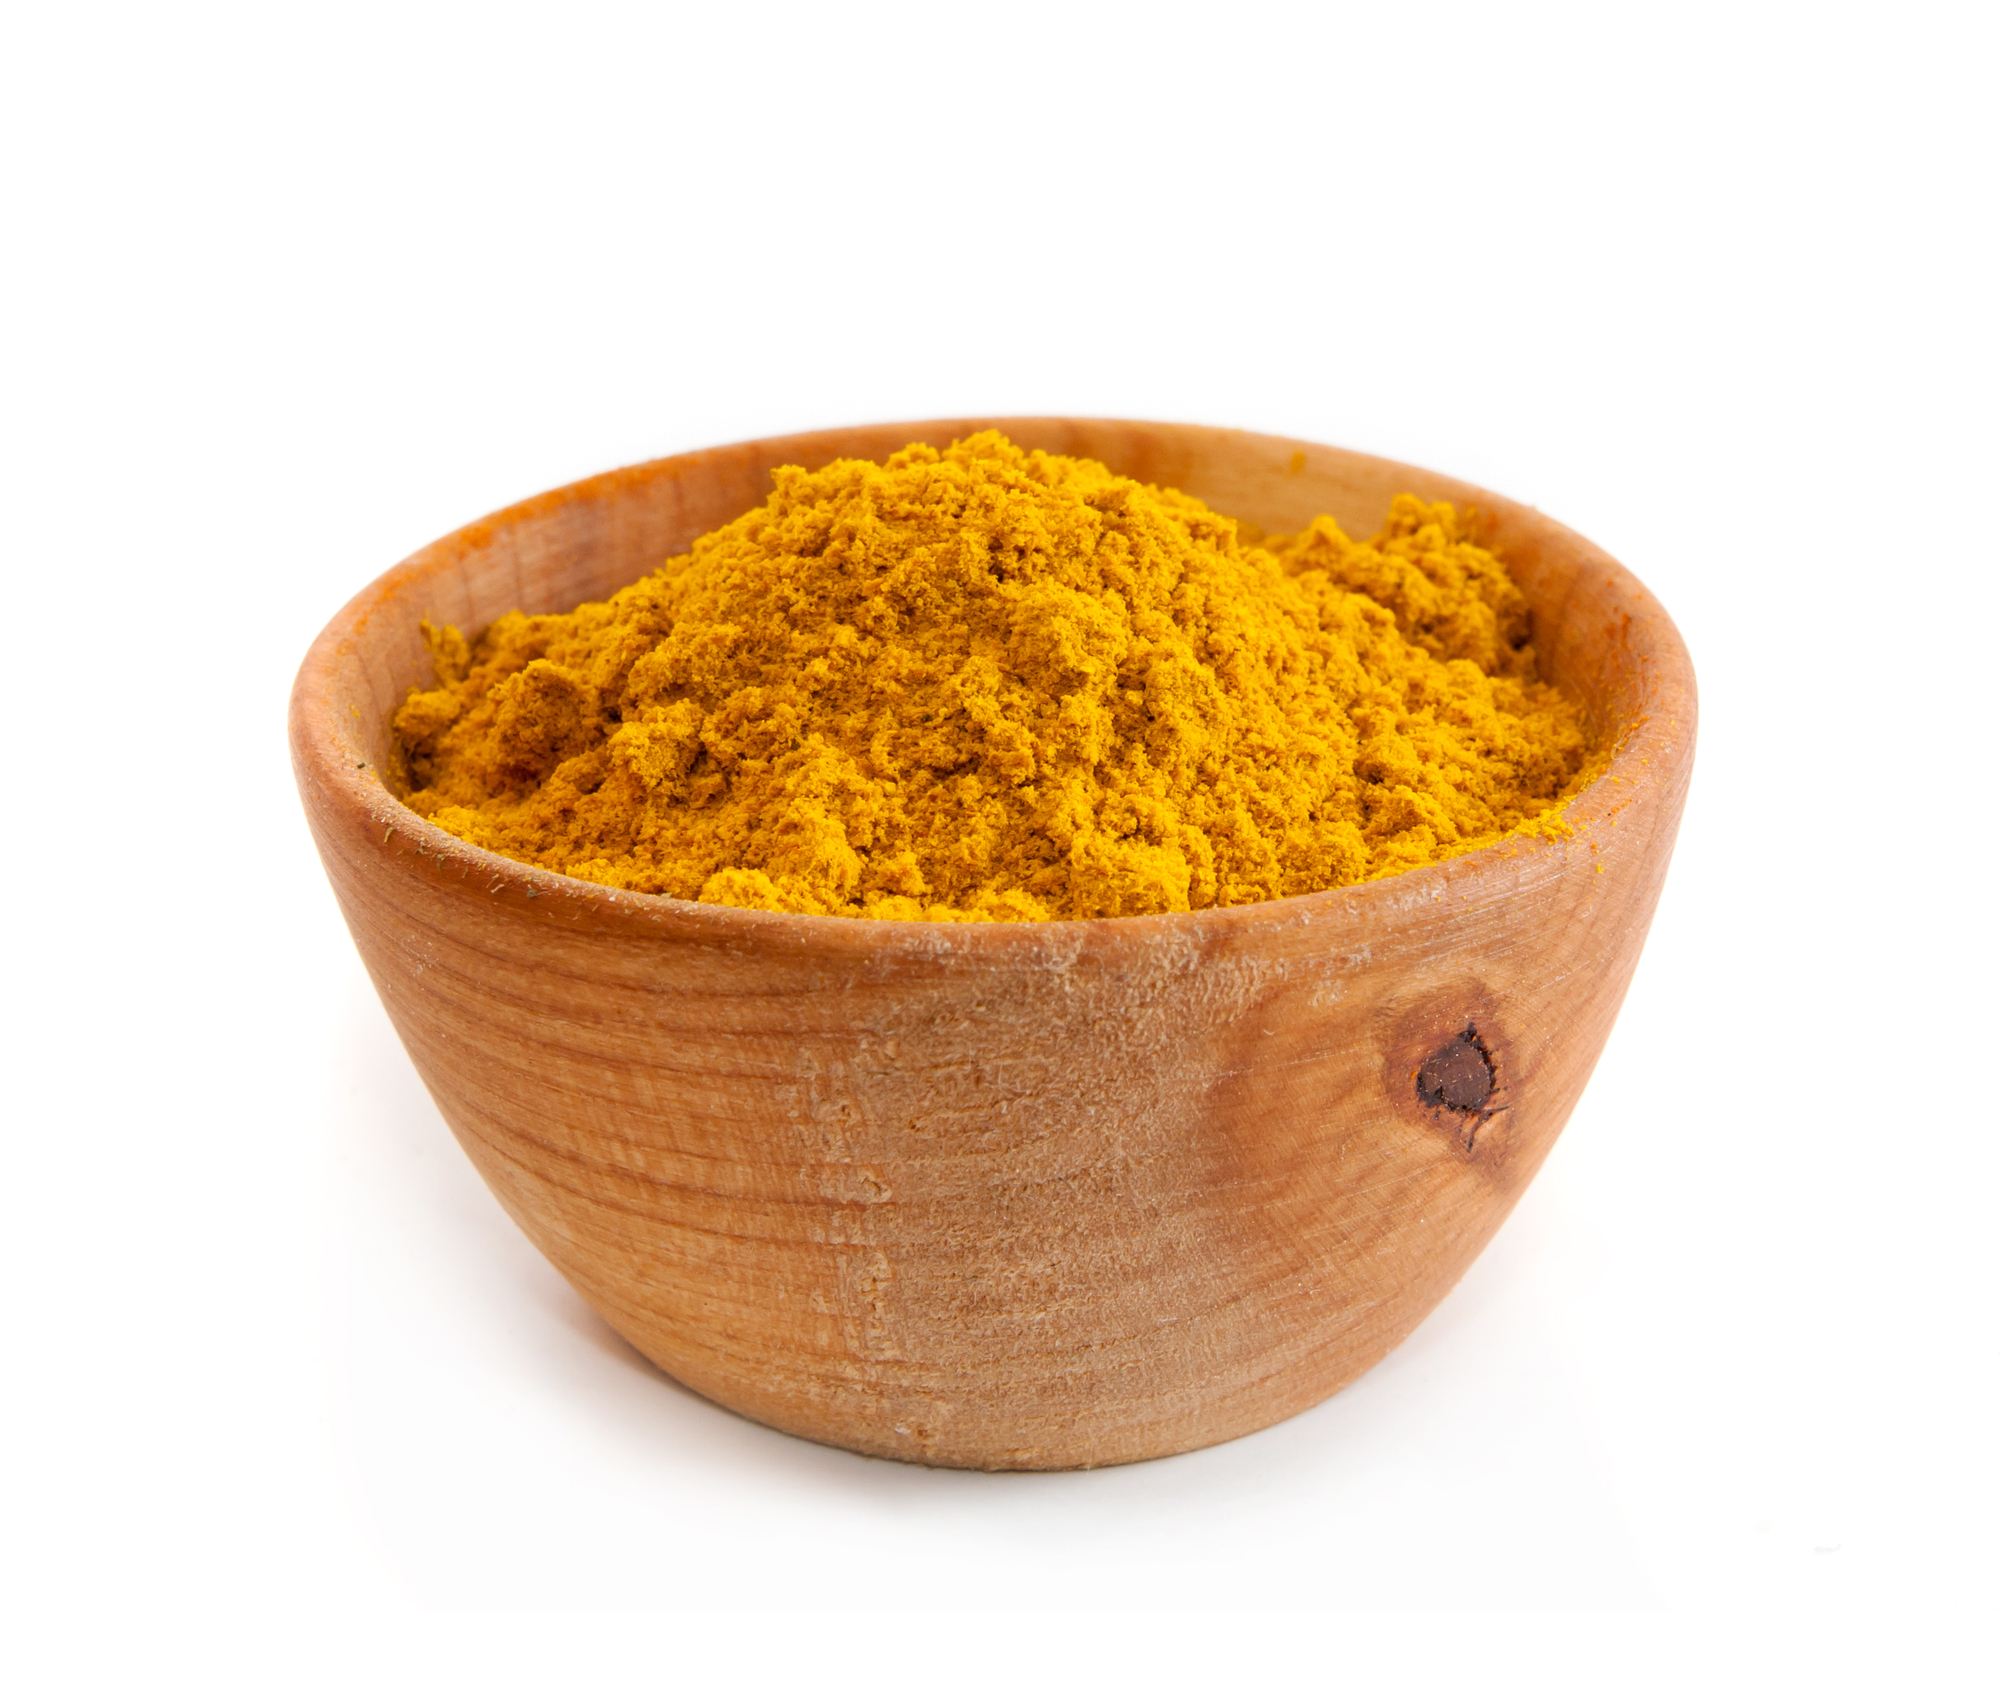 turmeric powder is great for health and beauty benefits